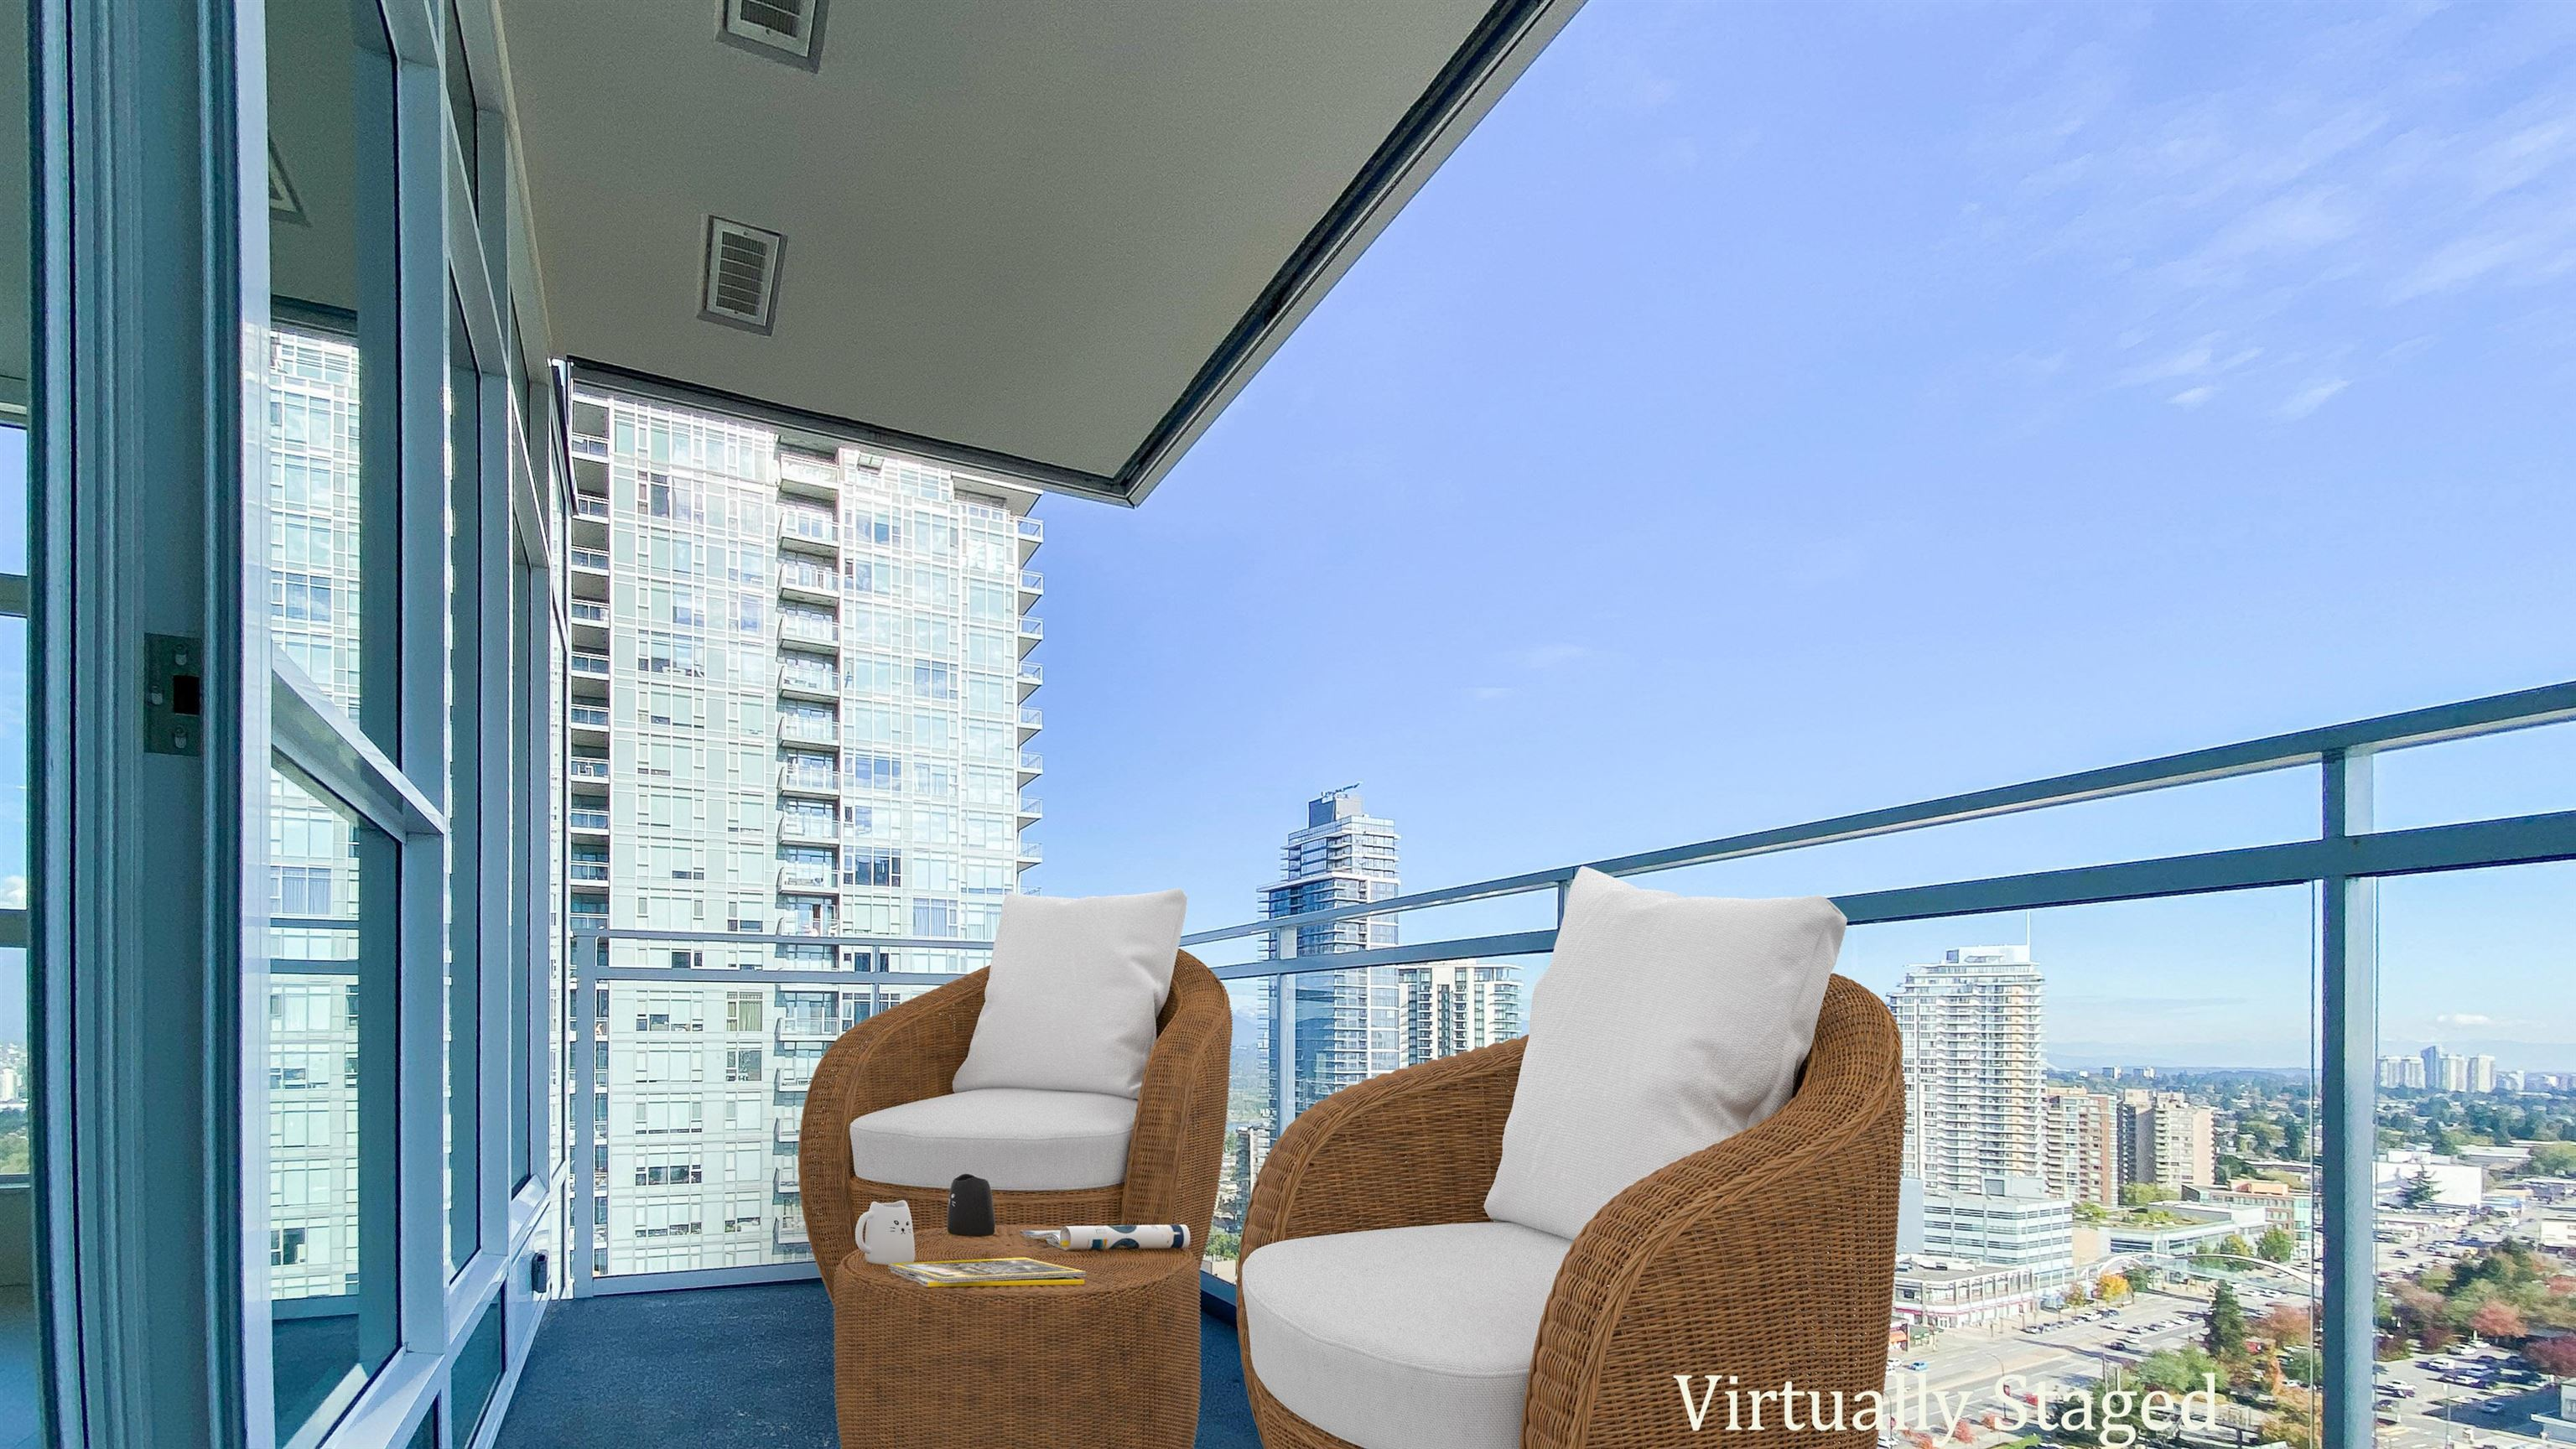 2510 4670 ASSEMBLY WAY - Metrotown Apartment/Condo for sale, 2 Bedrooms (R2625732) - #26